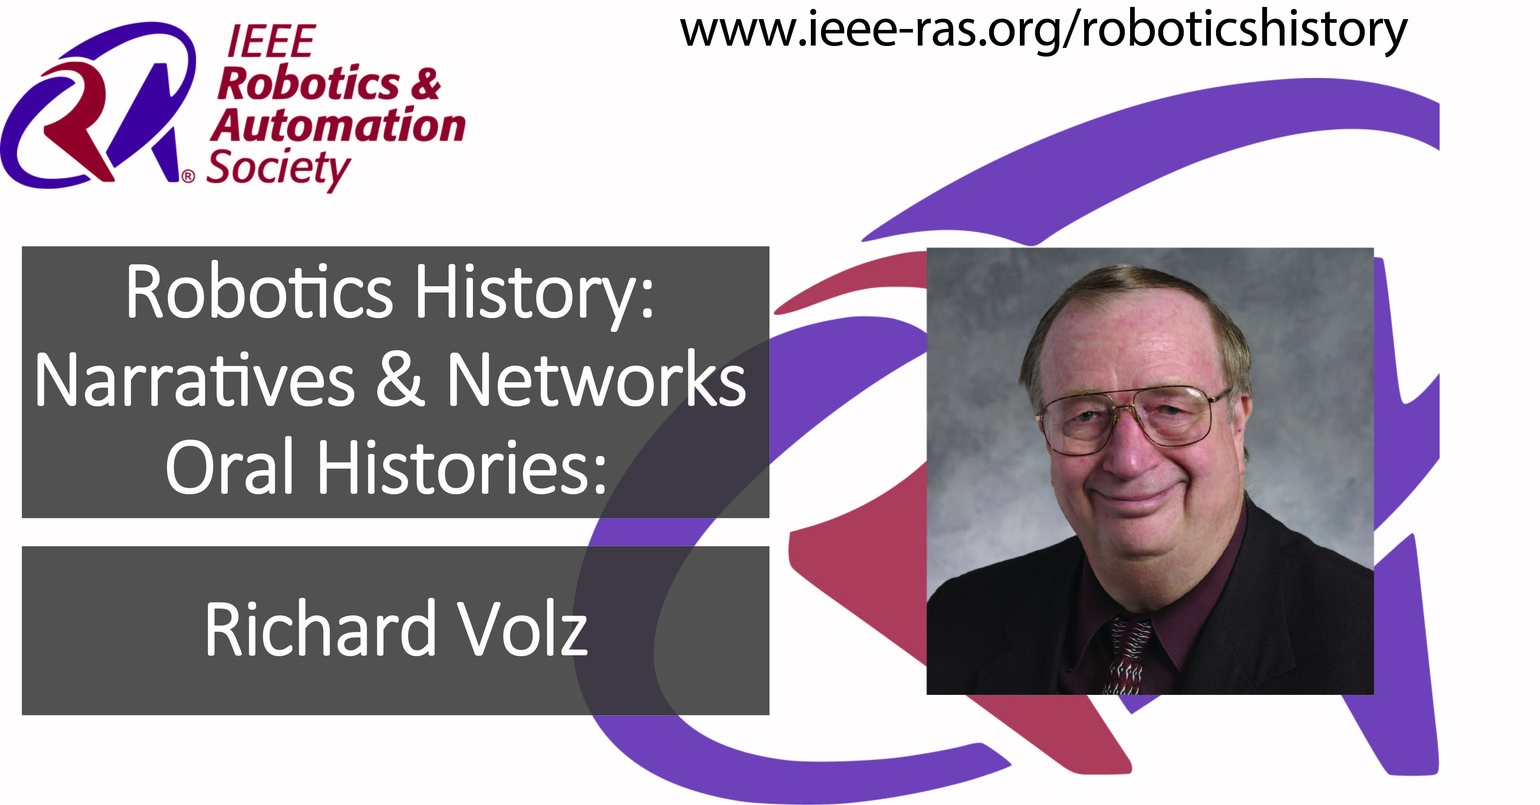 Robotics History: Narratives and Networks Oral Histories: Richard Volz